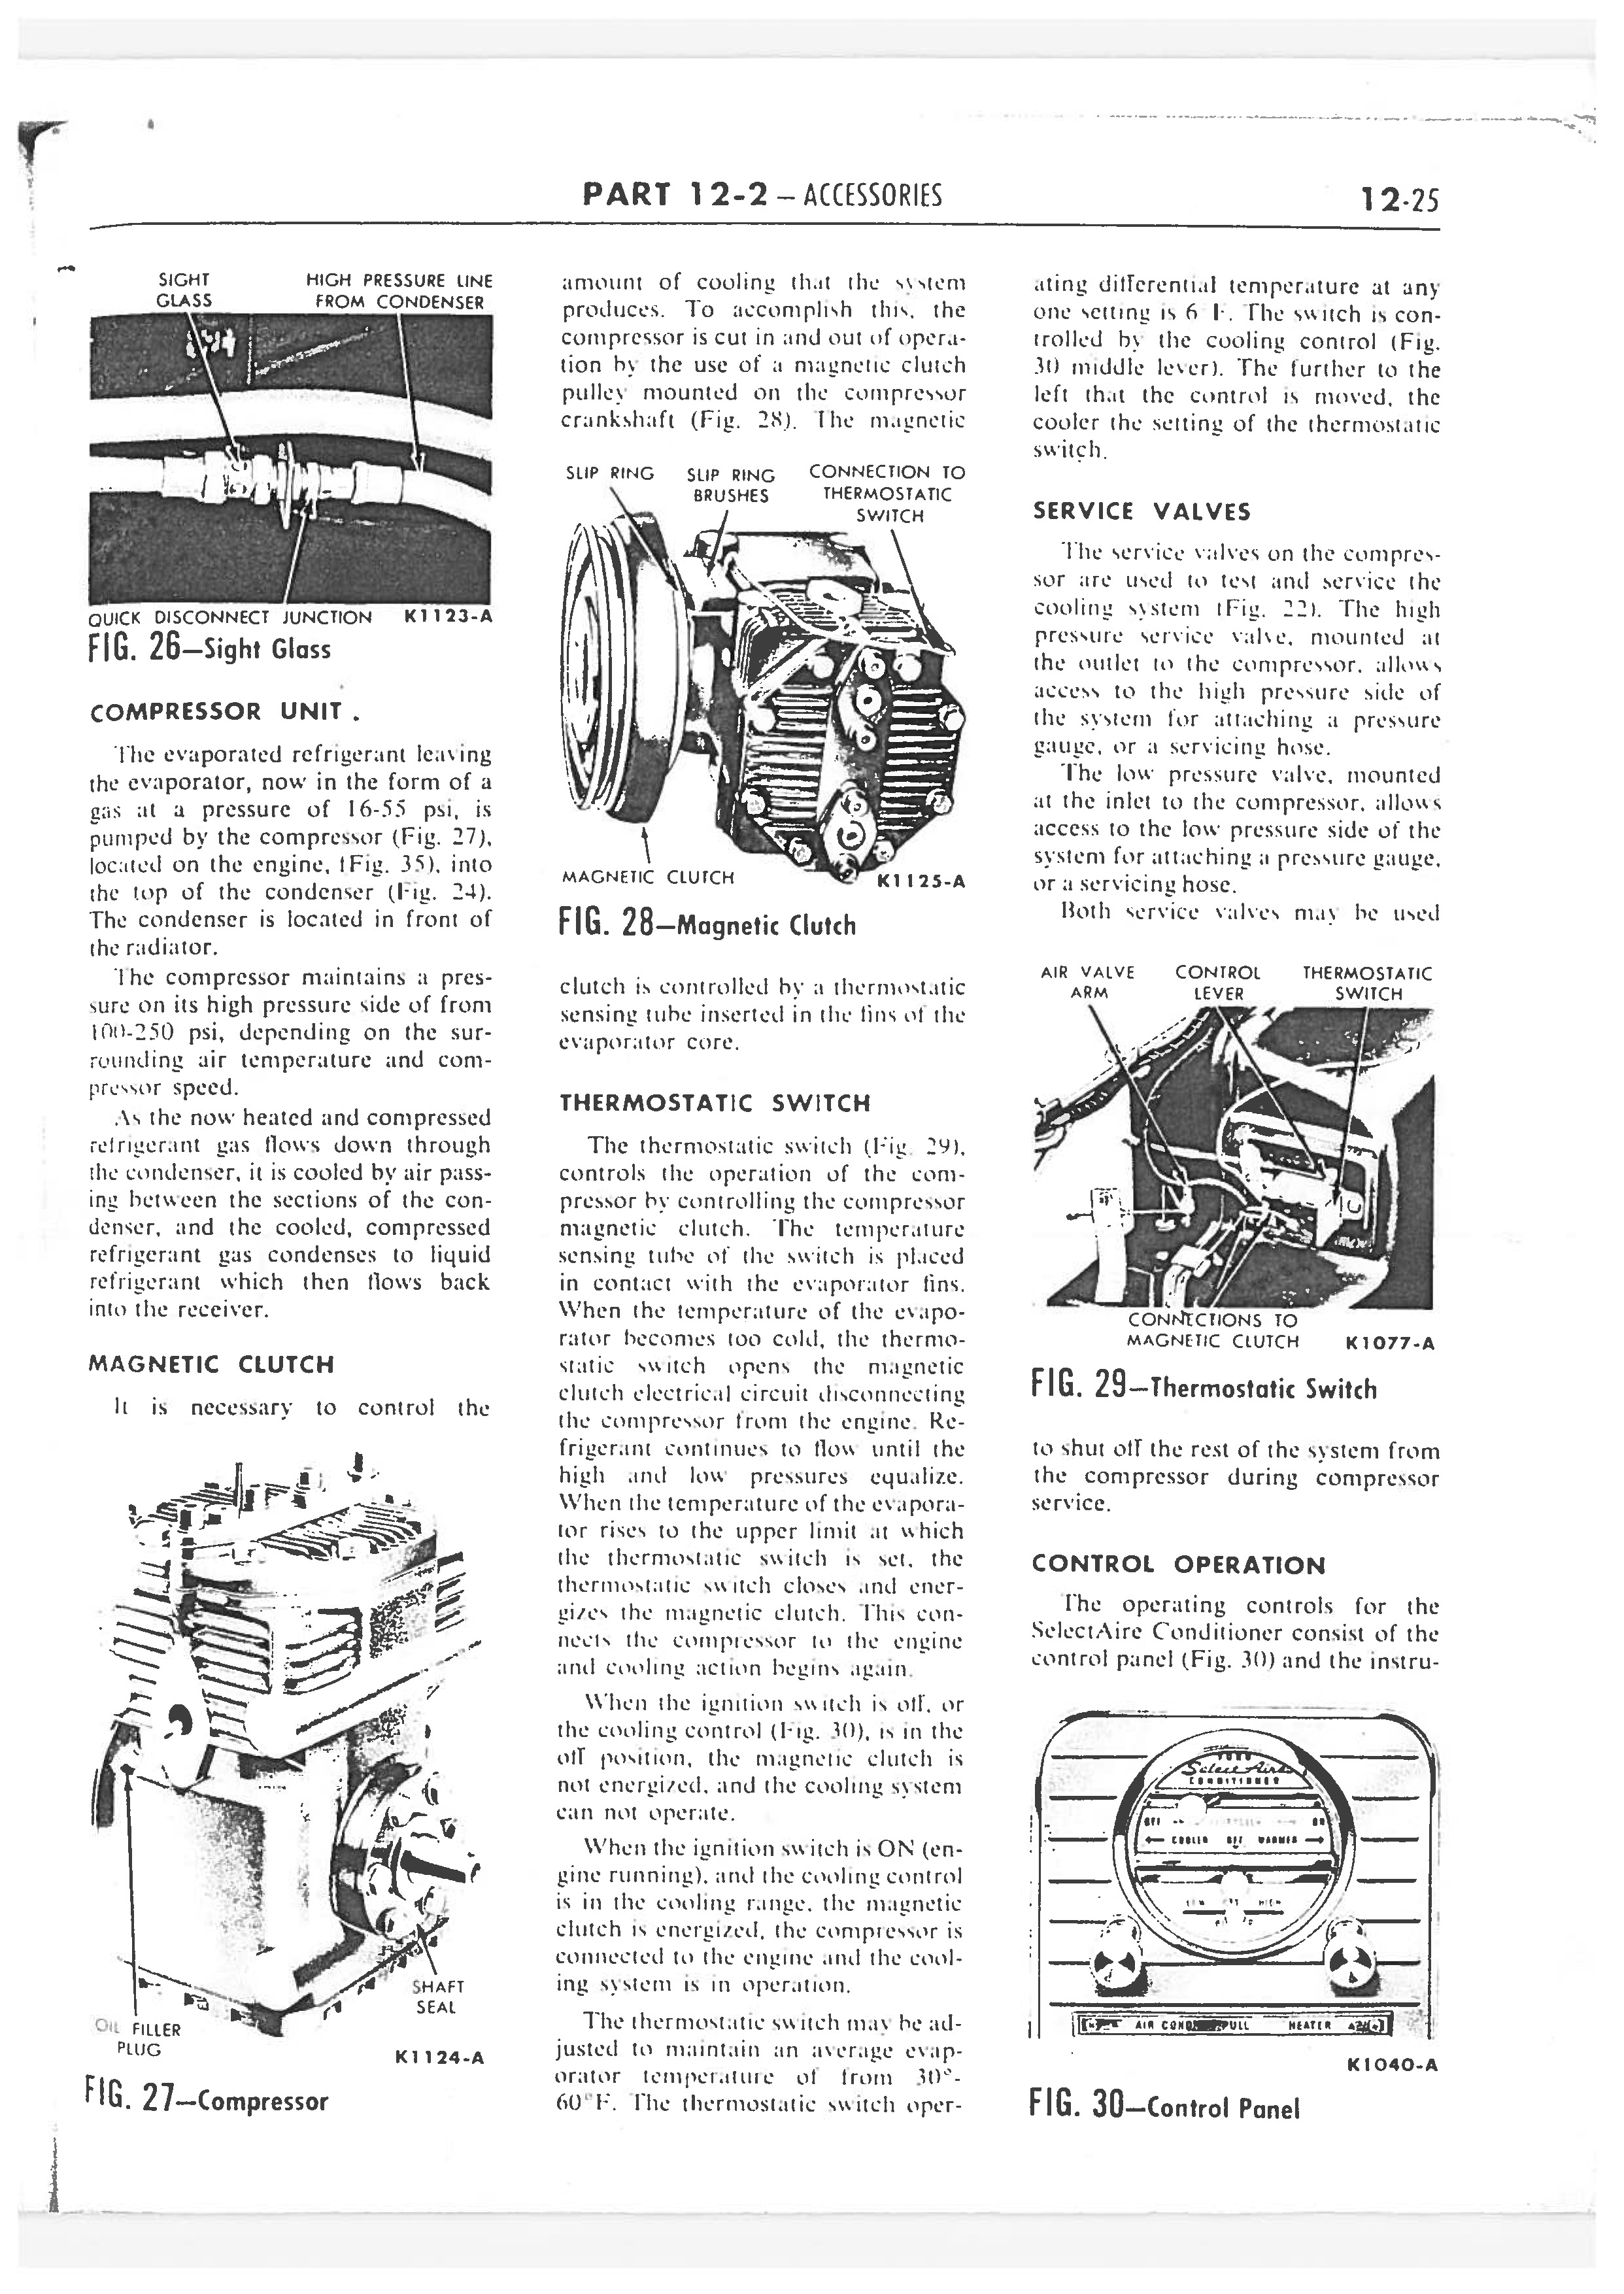 1958 Ford Thunderbird Shop Manual page 350 of 360